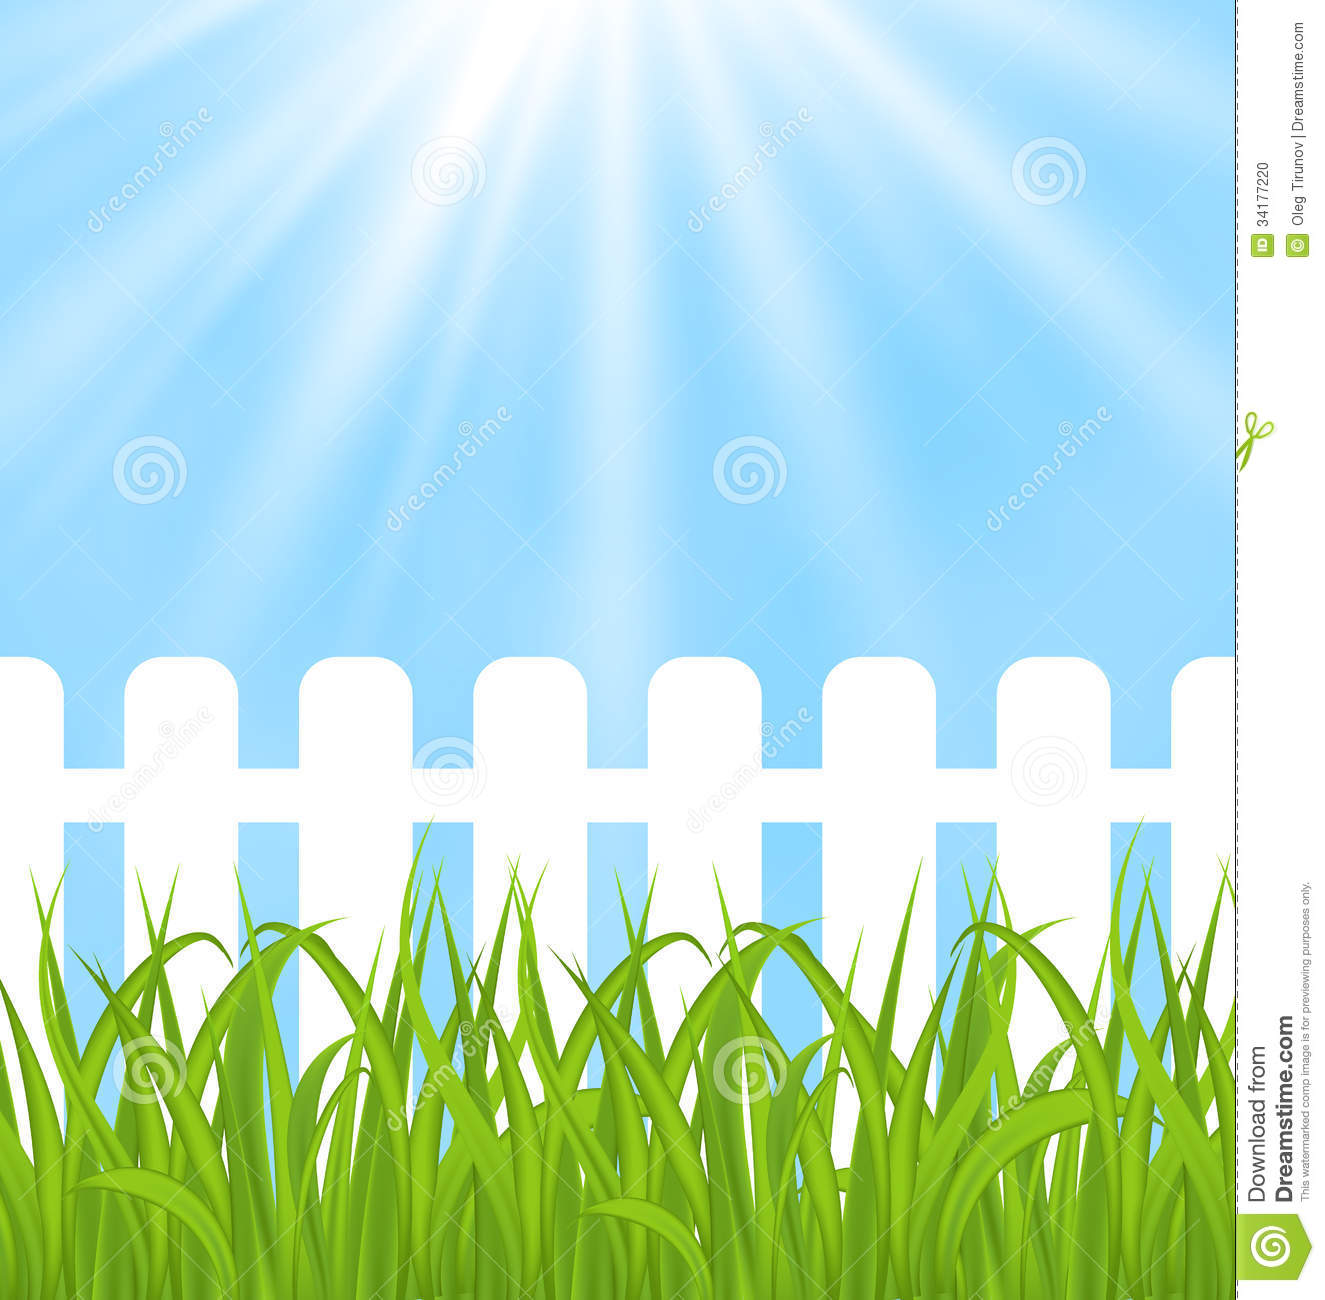 Fresh green grass over wood fence background stock vector for Staccionata dwg